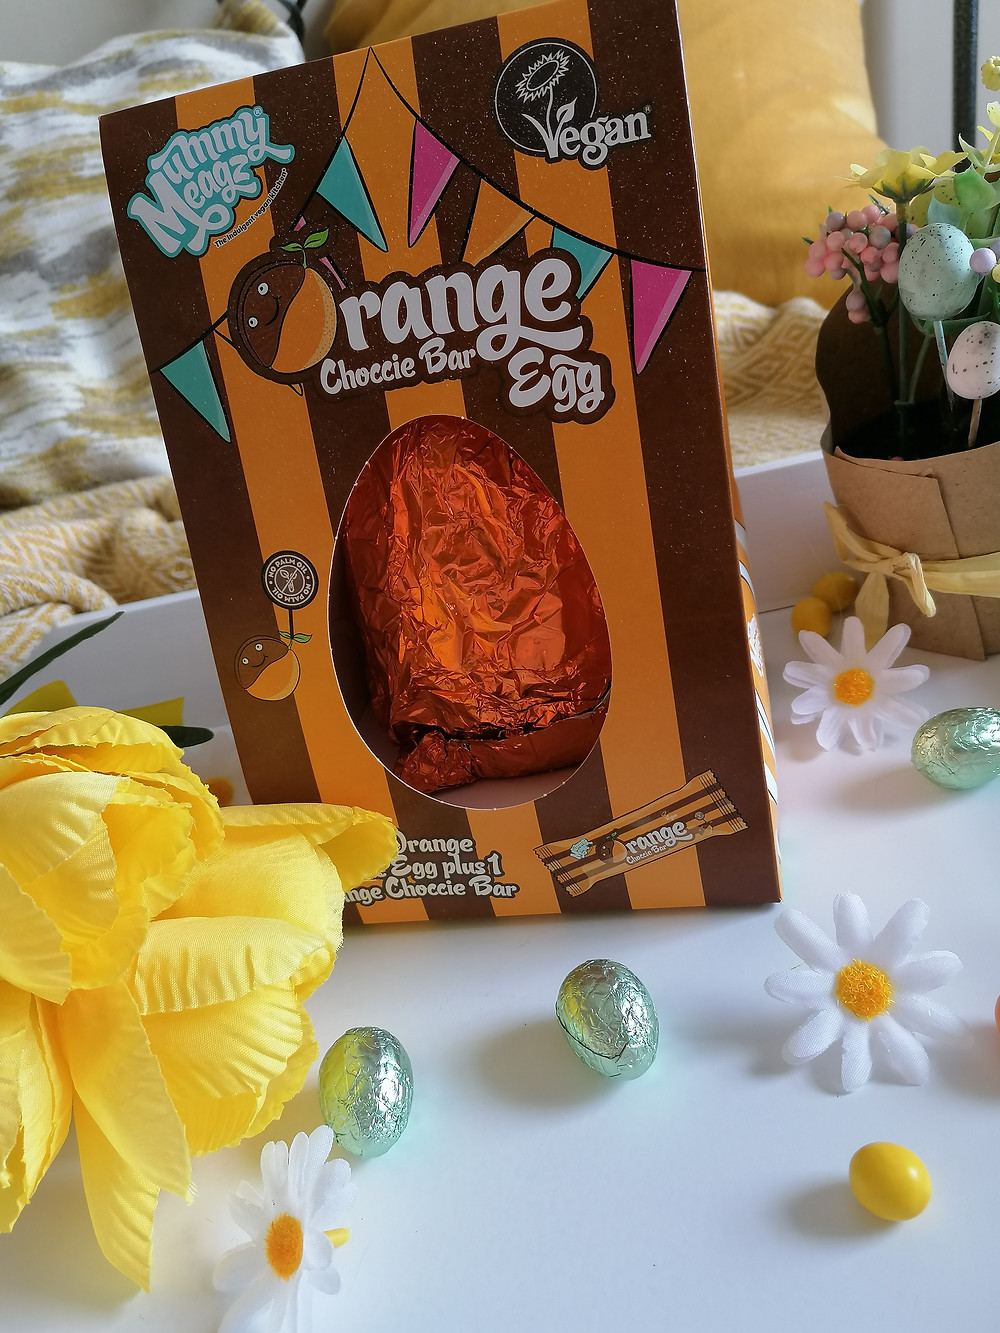 Mummy Meagz Orange Choccie Bar Egg